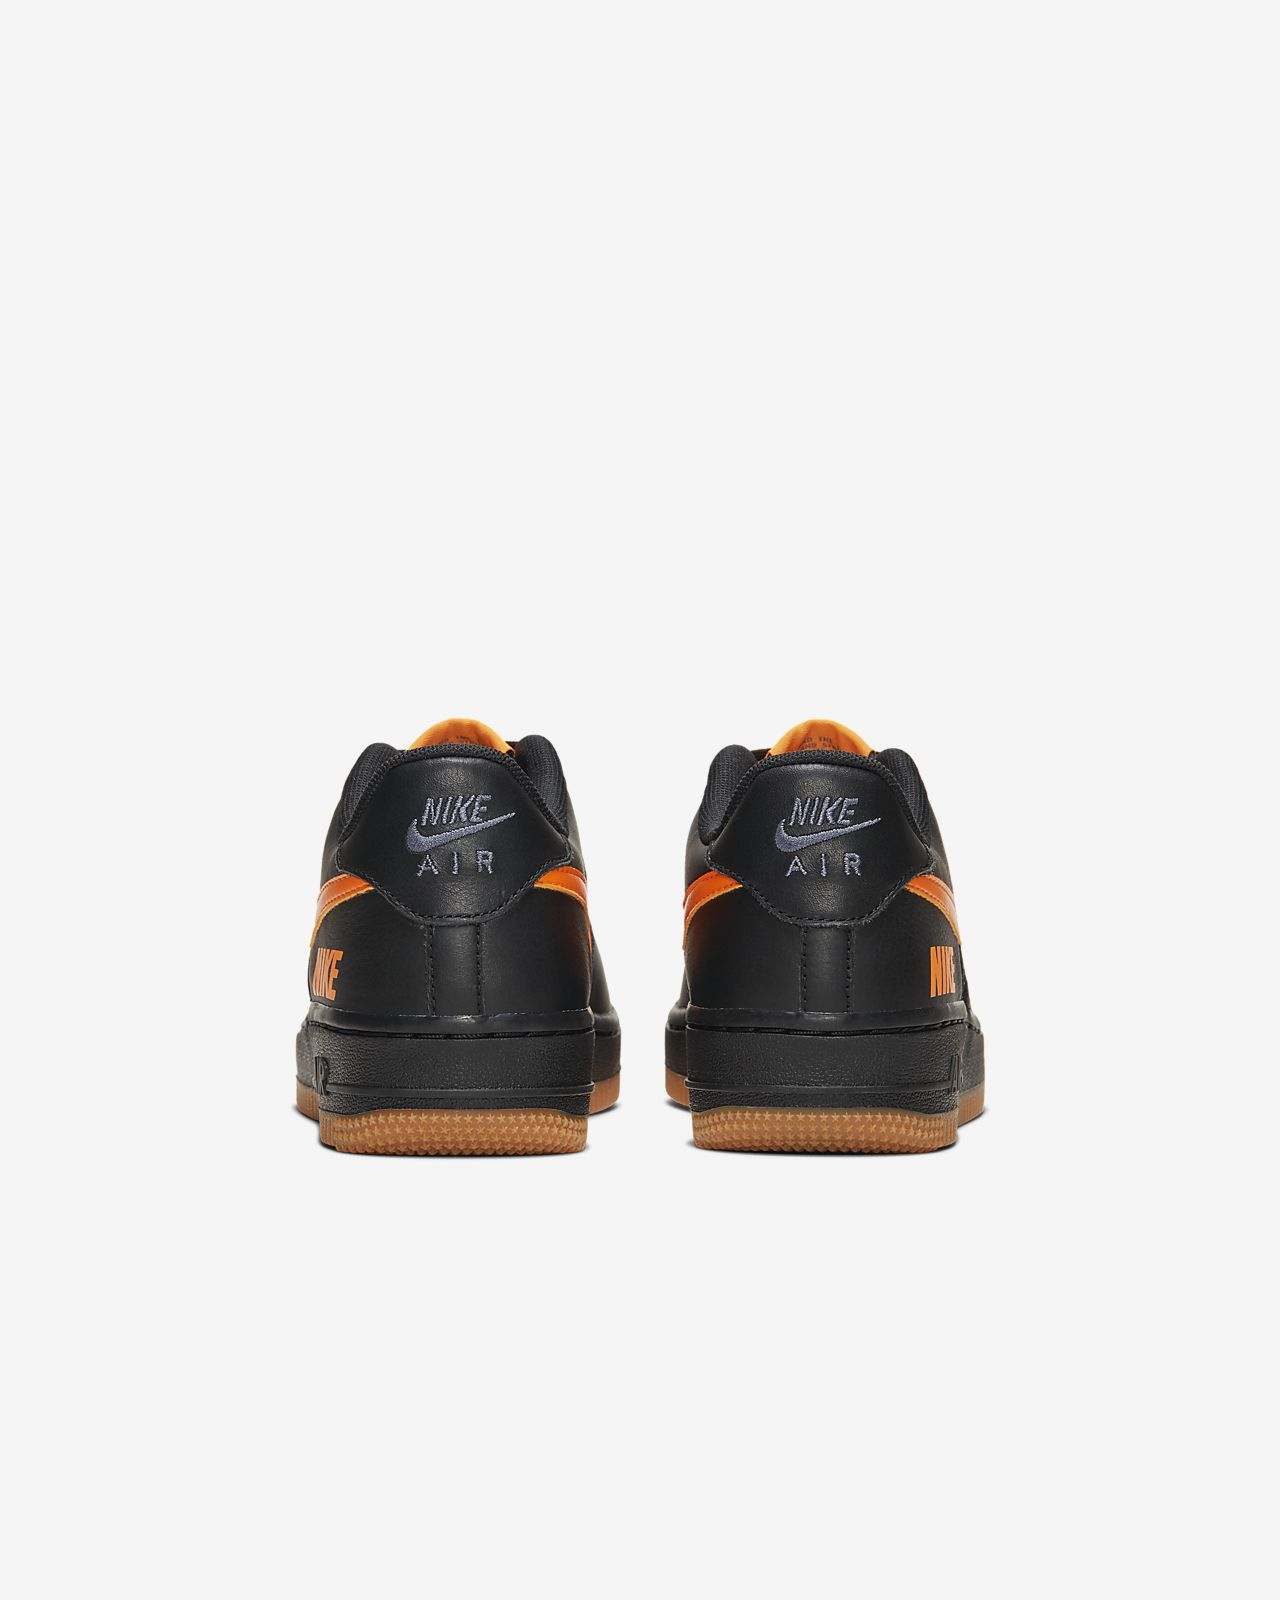 Nike Air Force 1 LV8 5 Kinderschoen